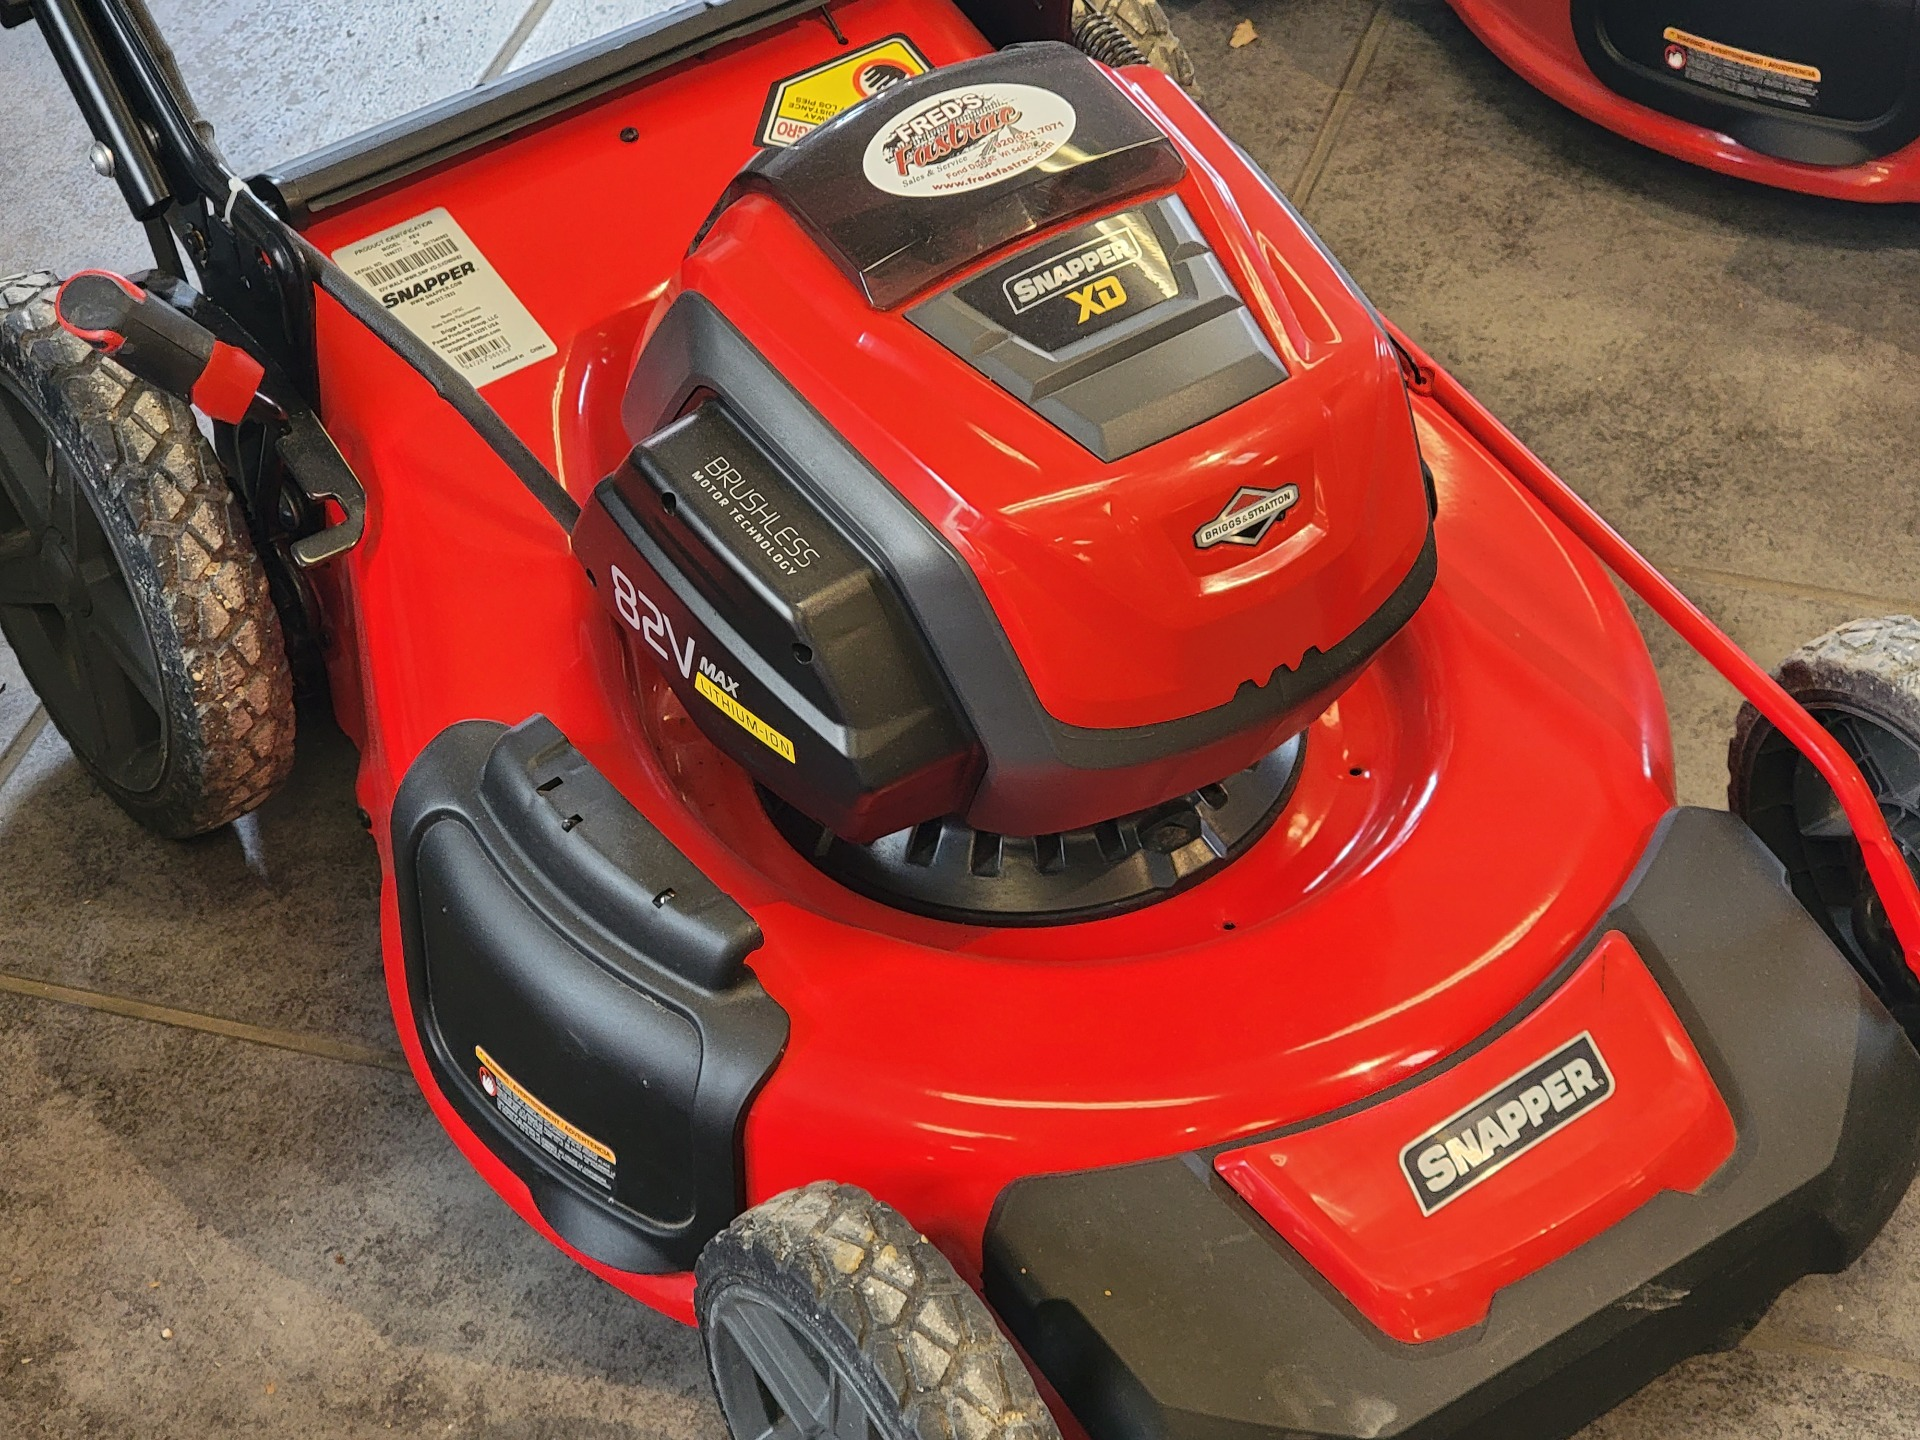 Snapper SXD21SPWM82K 21 in. 82V Max Lithium-Ion Cordless Self-Propelled in Fond Du Lac, Wisconsin - Photo 2